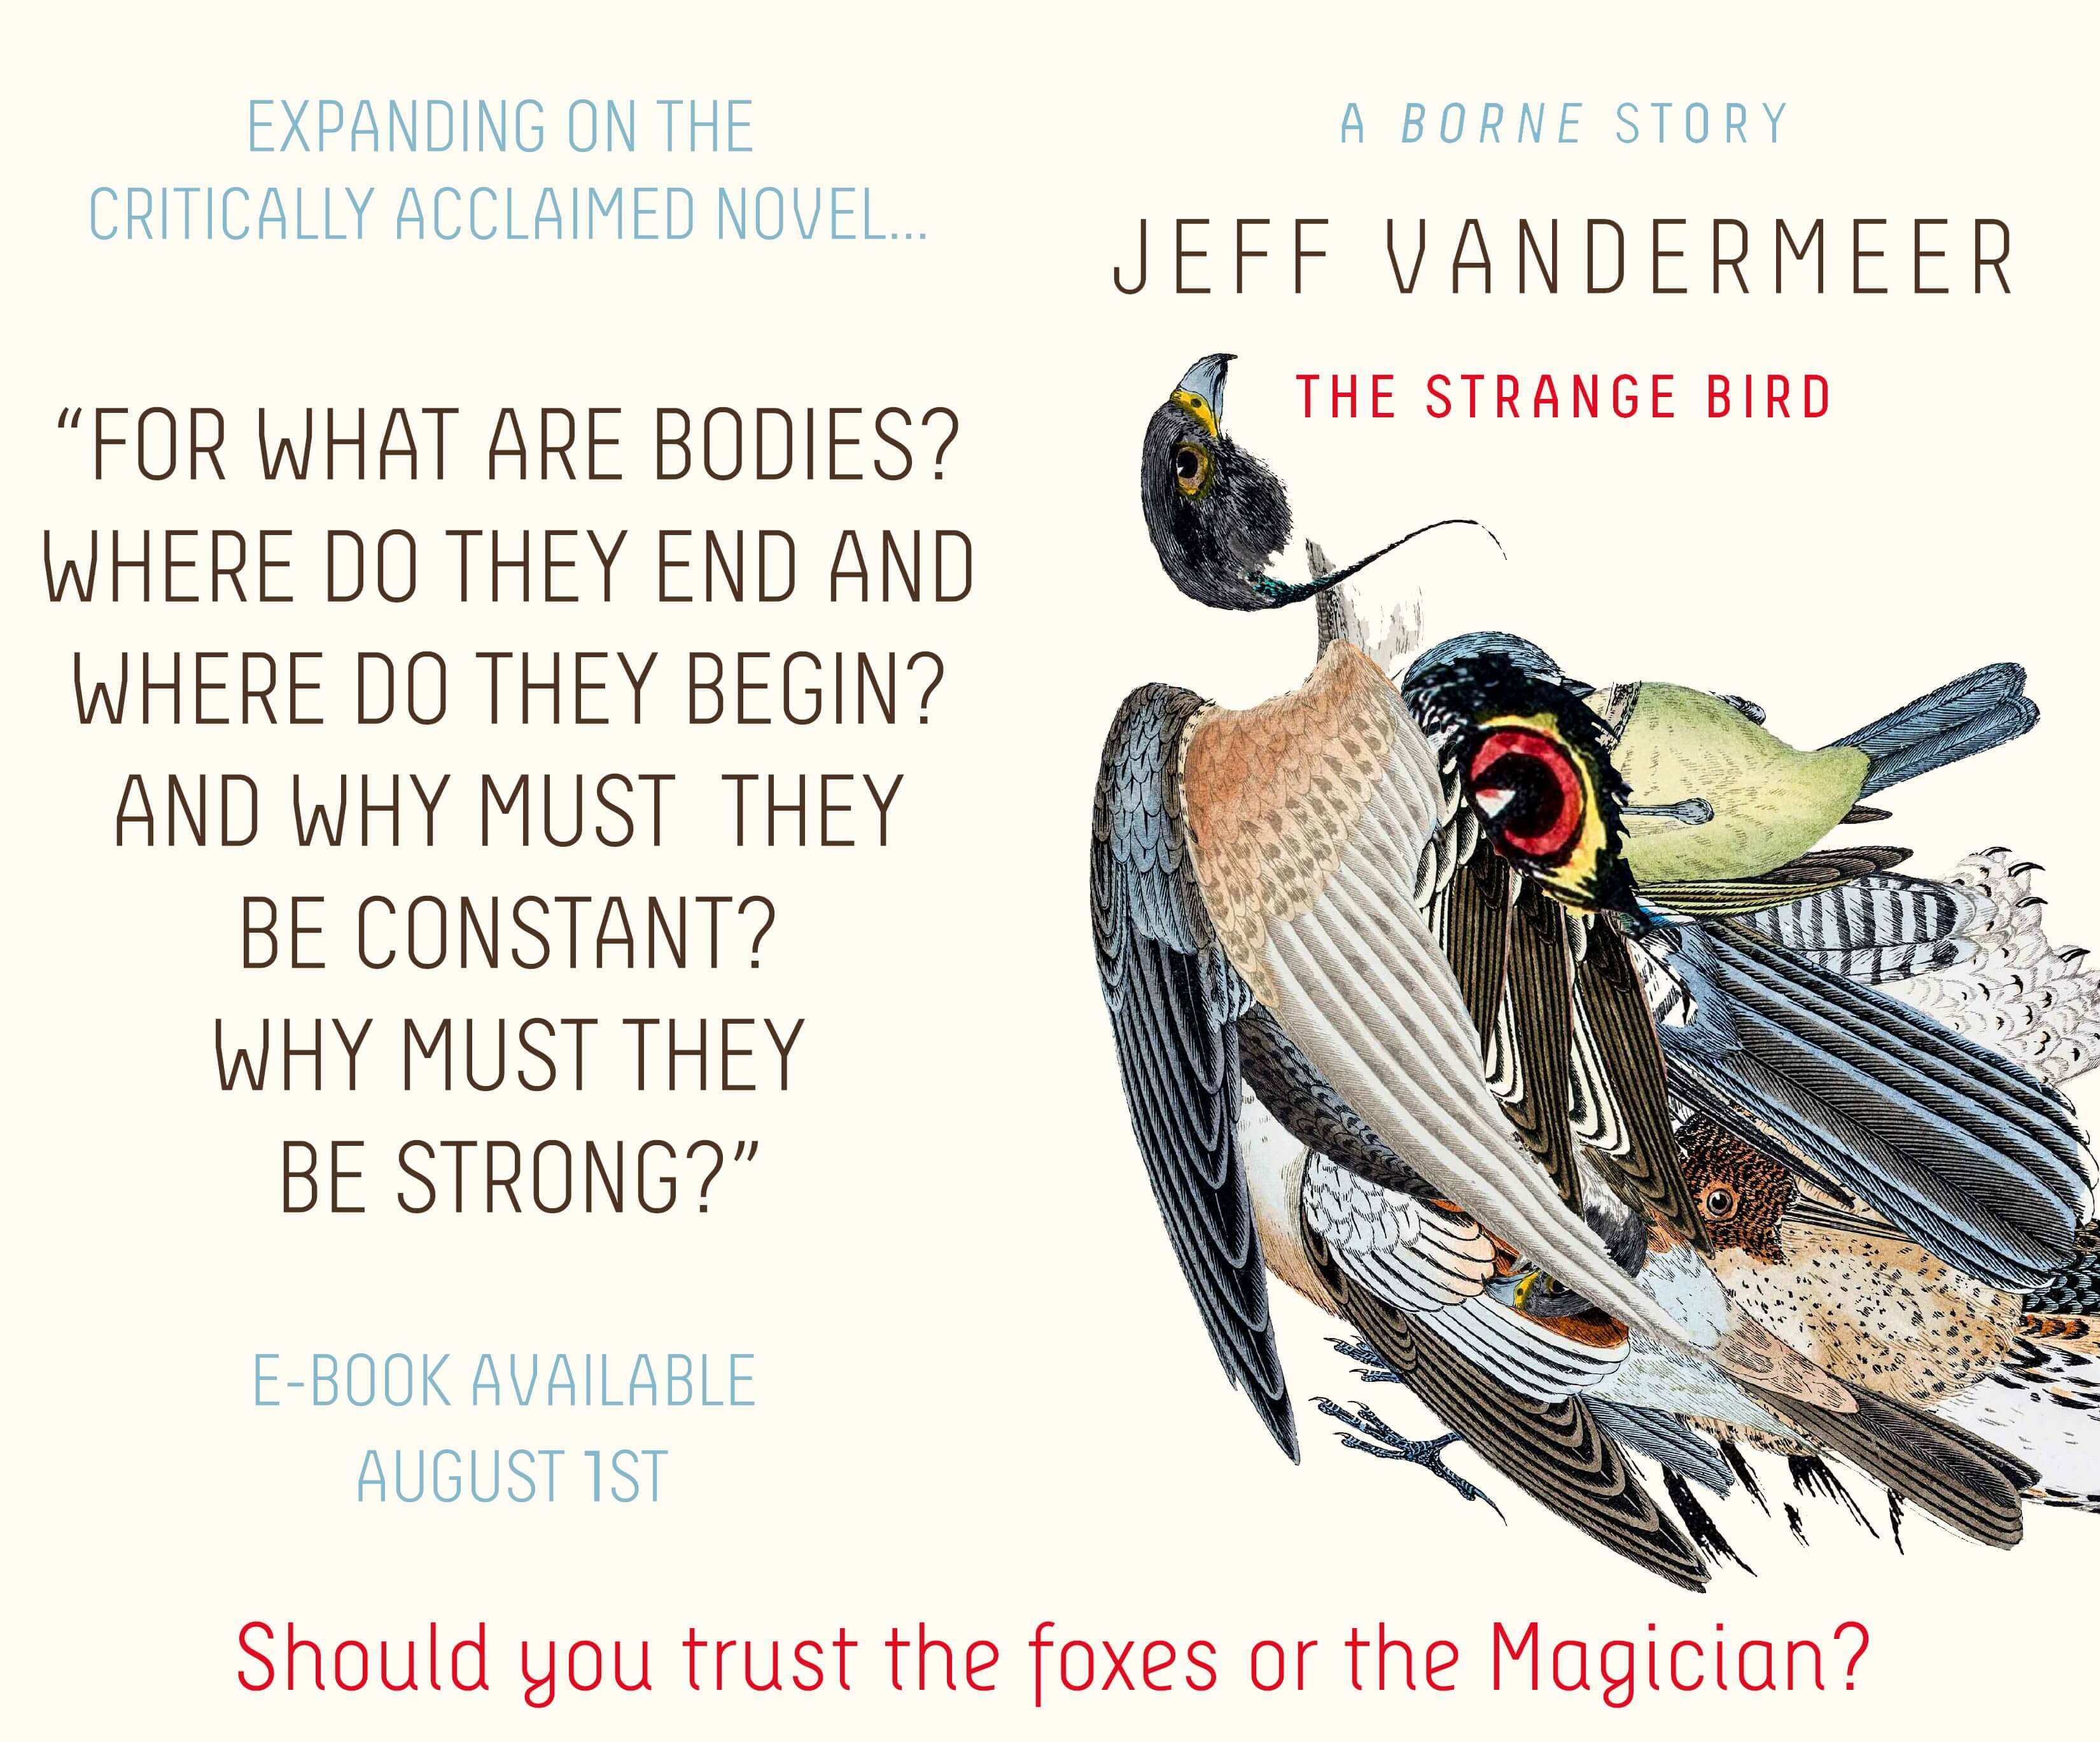 Borne central jeff vandermeer the strange bird isingenious provocative and deeply moving depauls environmental critique blog fandeluxe Image collections